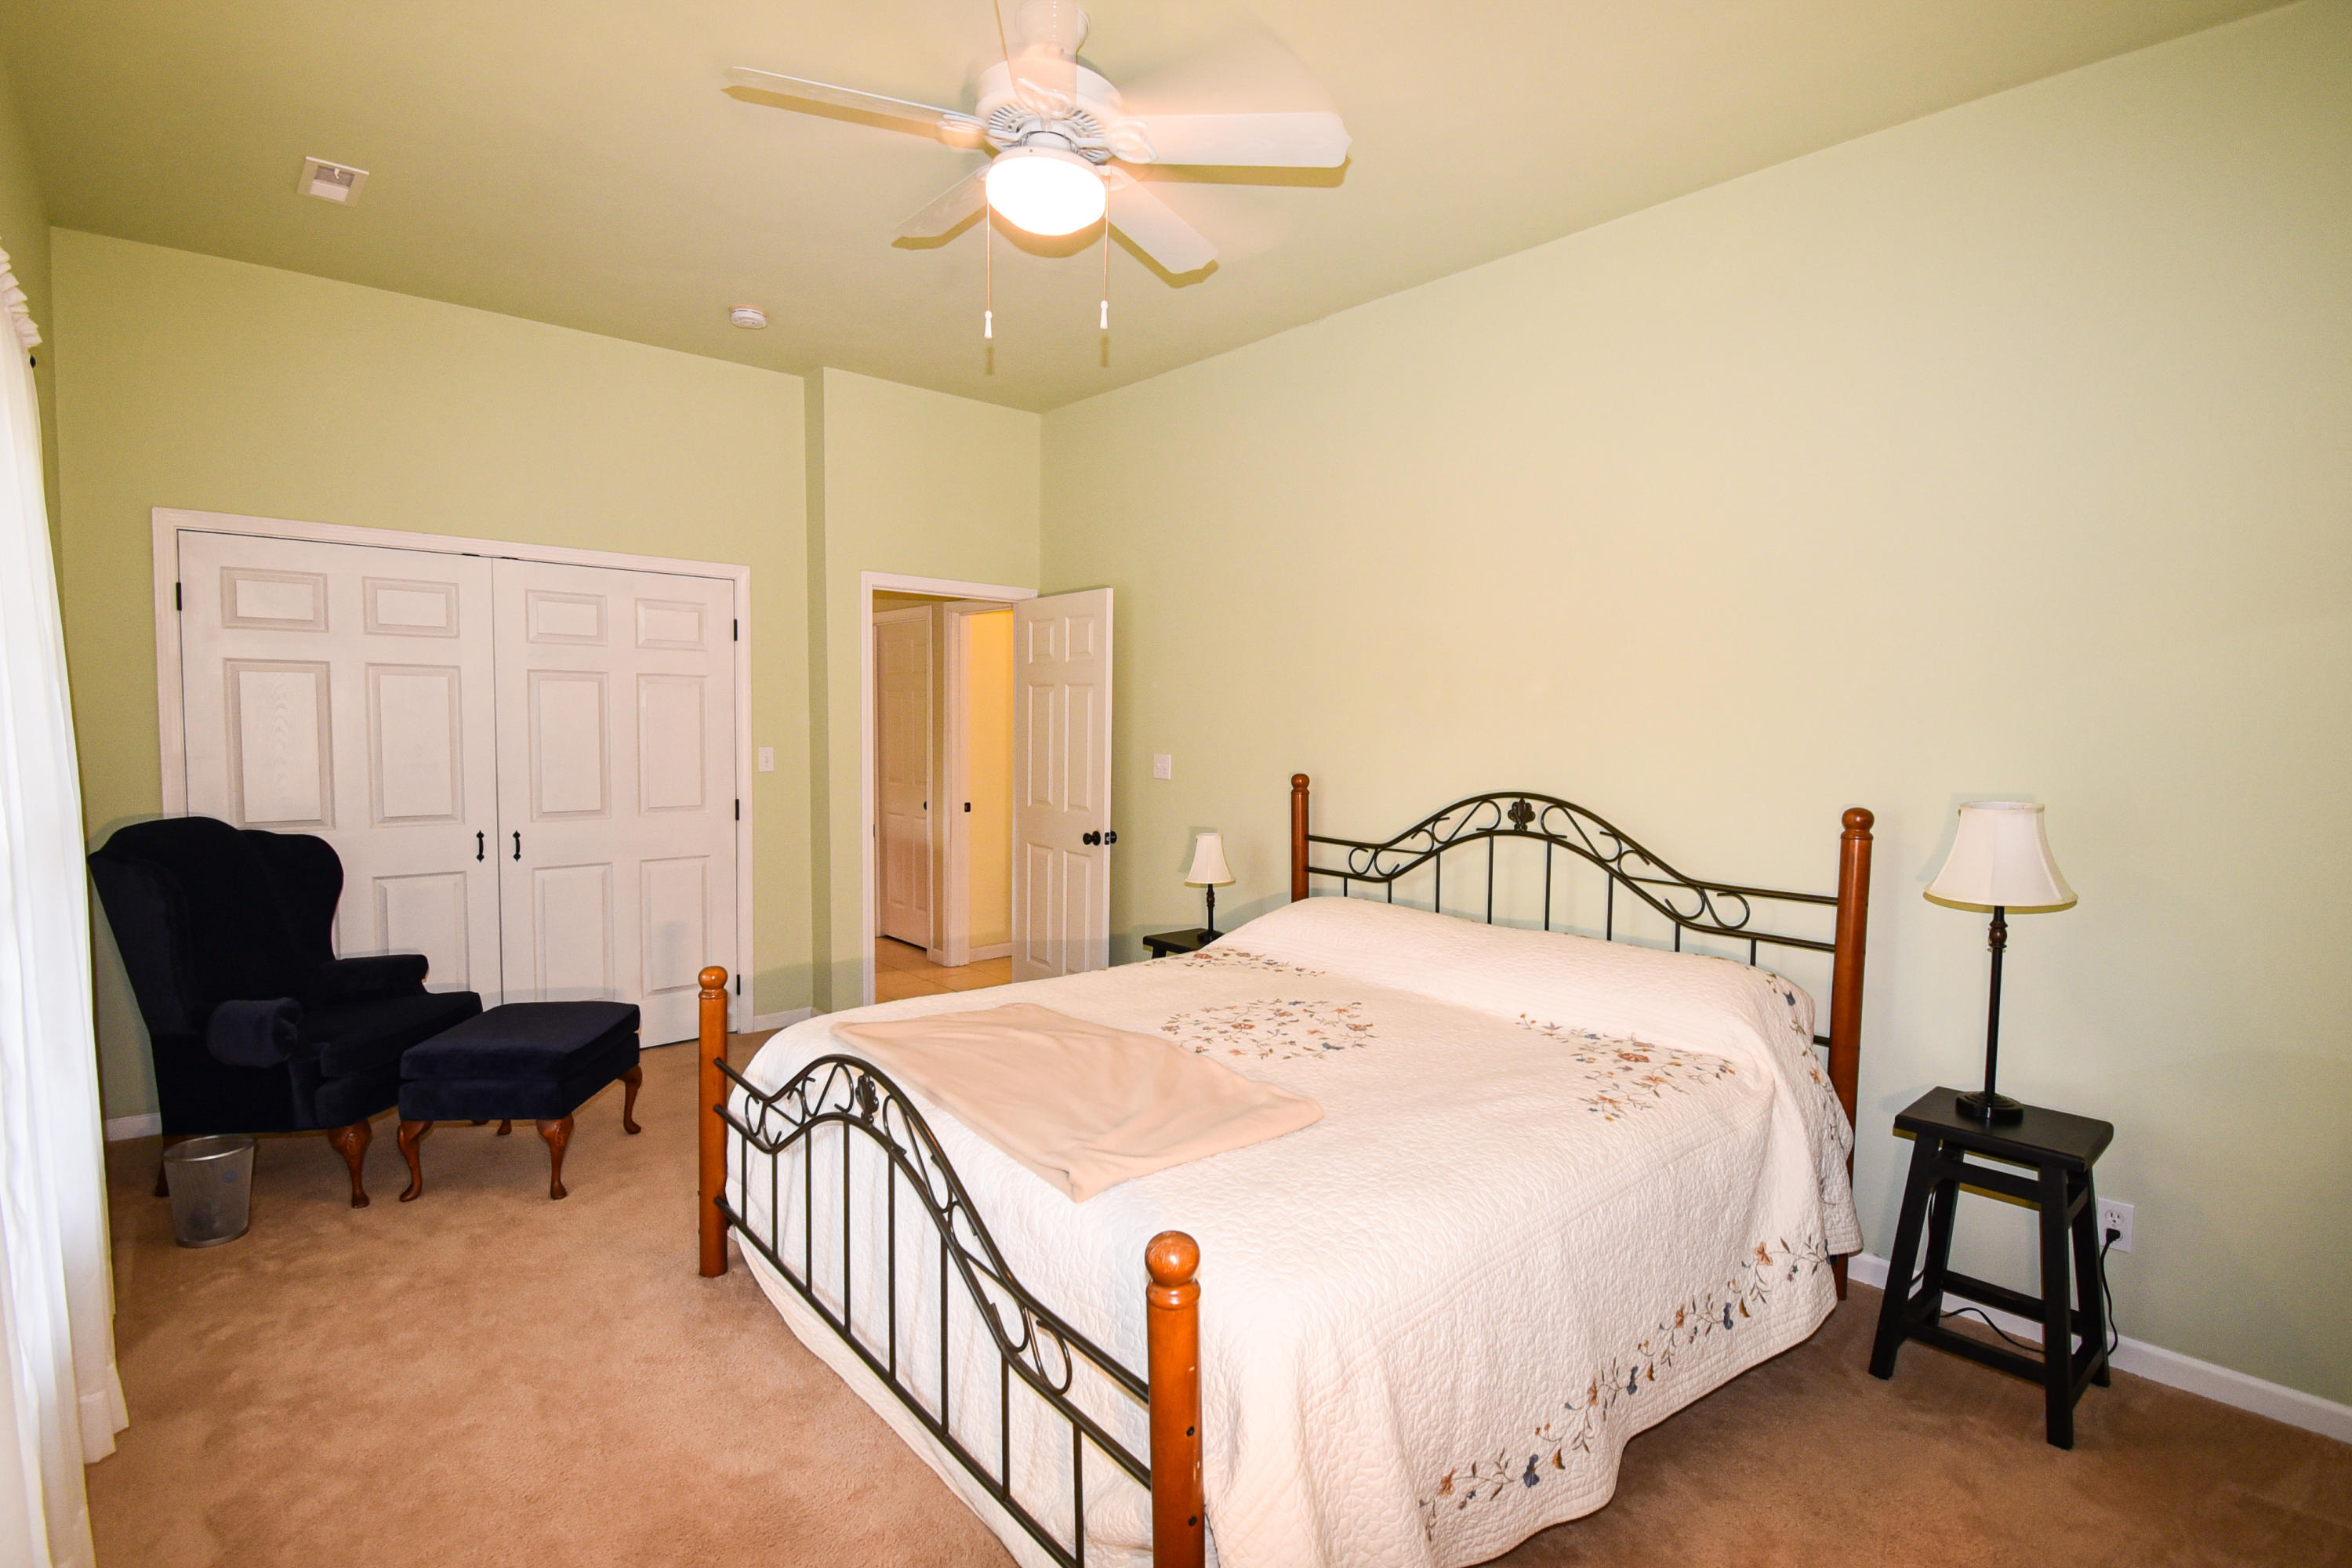 191 Clearwater Rd: